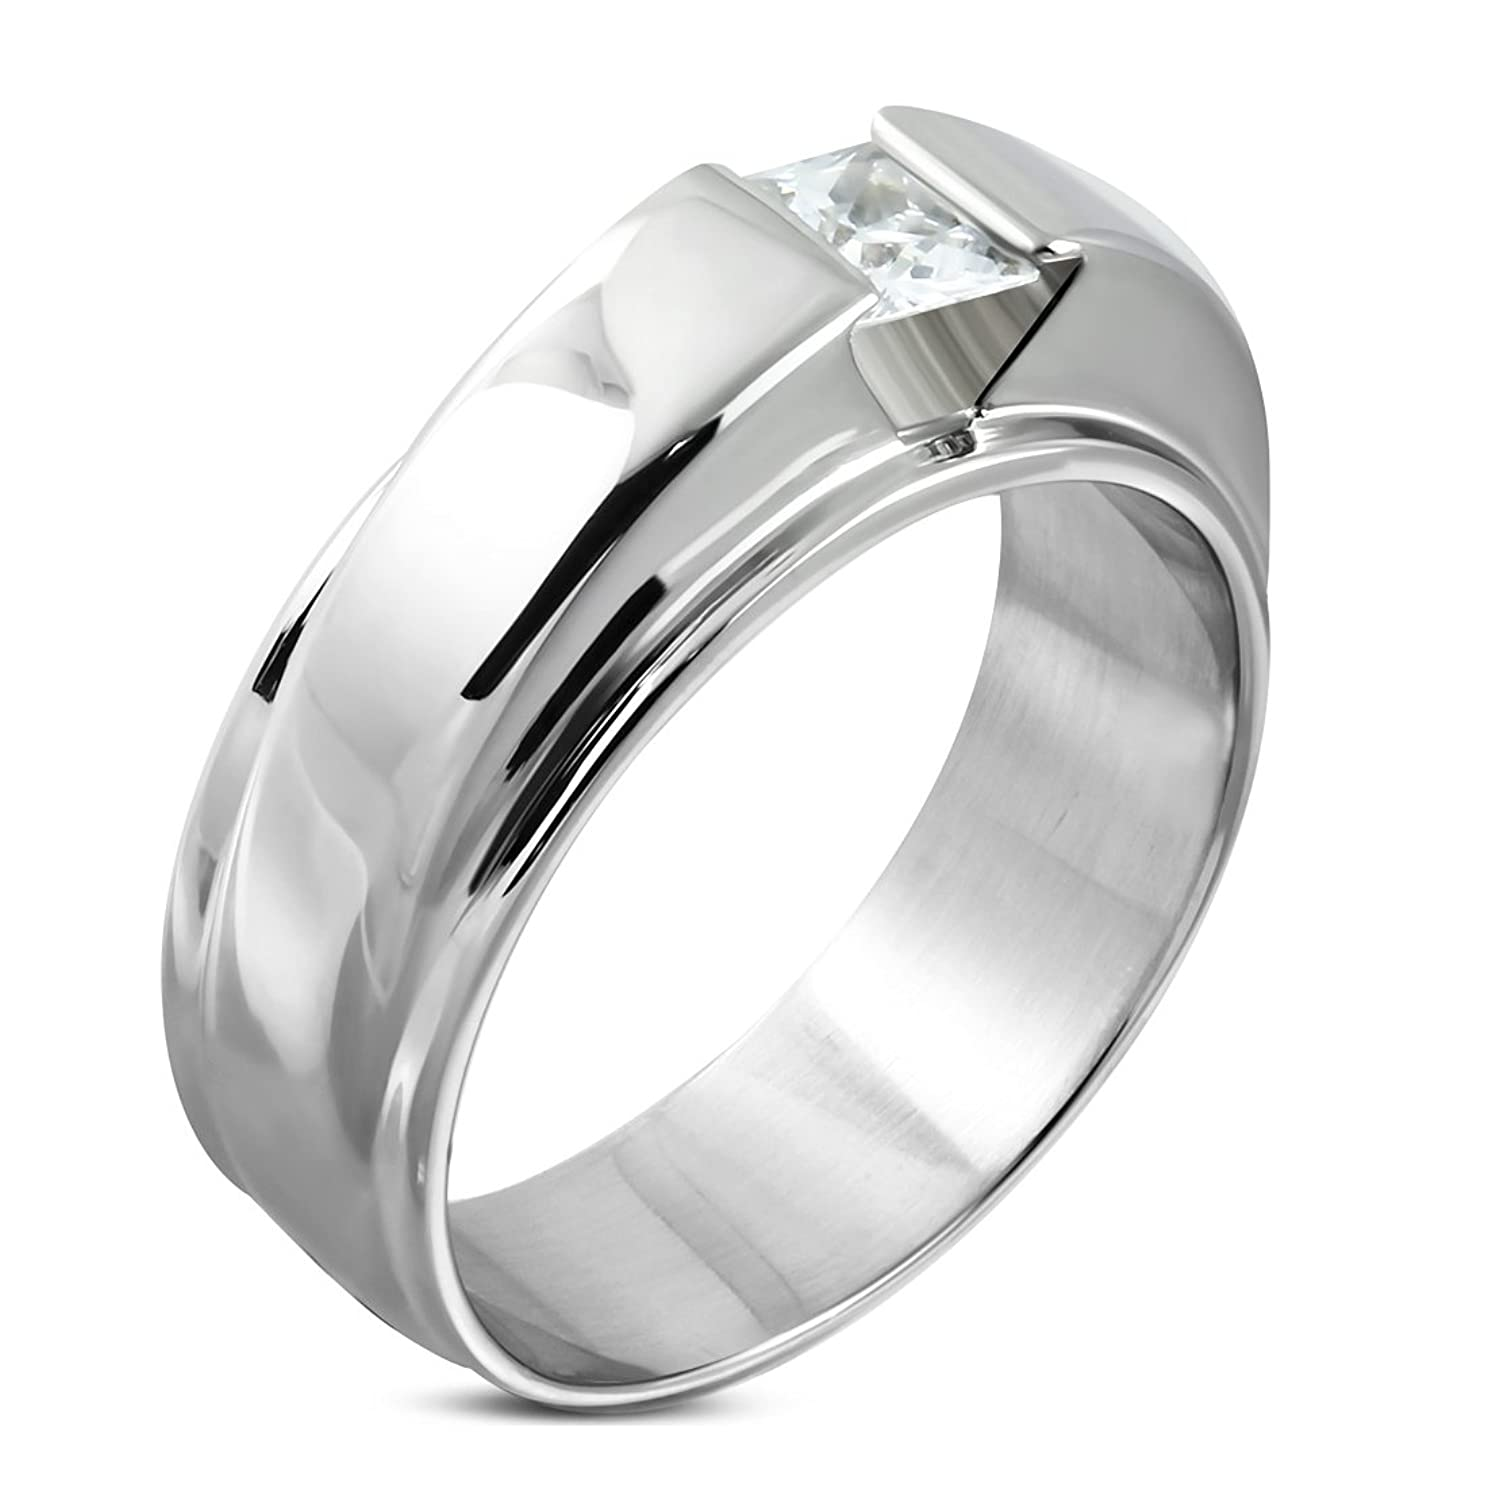 Stainless Steel Compression-Set Double Geometric Ring with Clear CZ